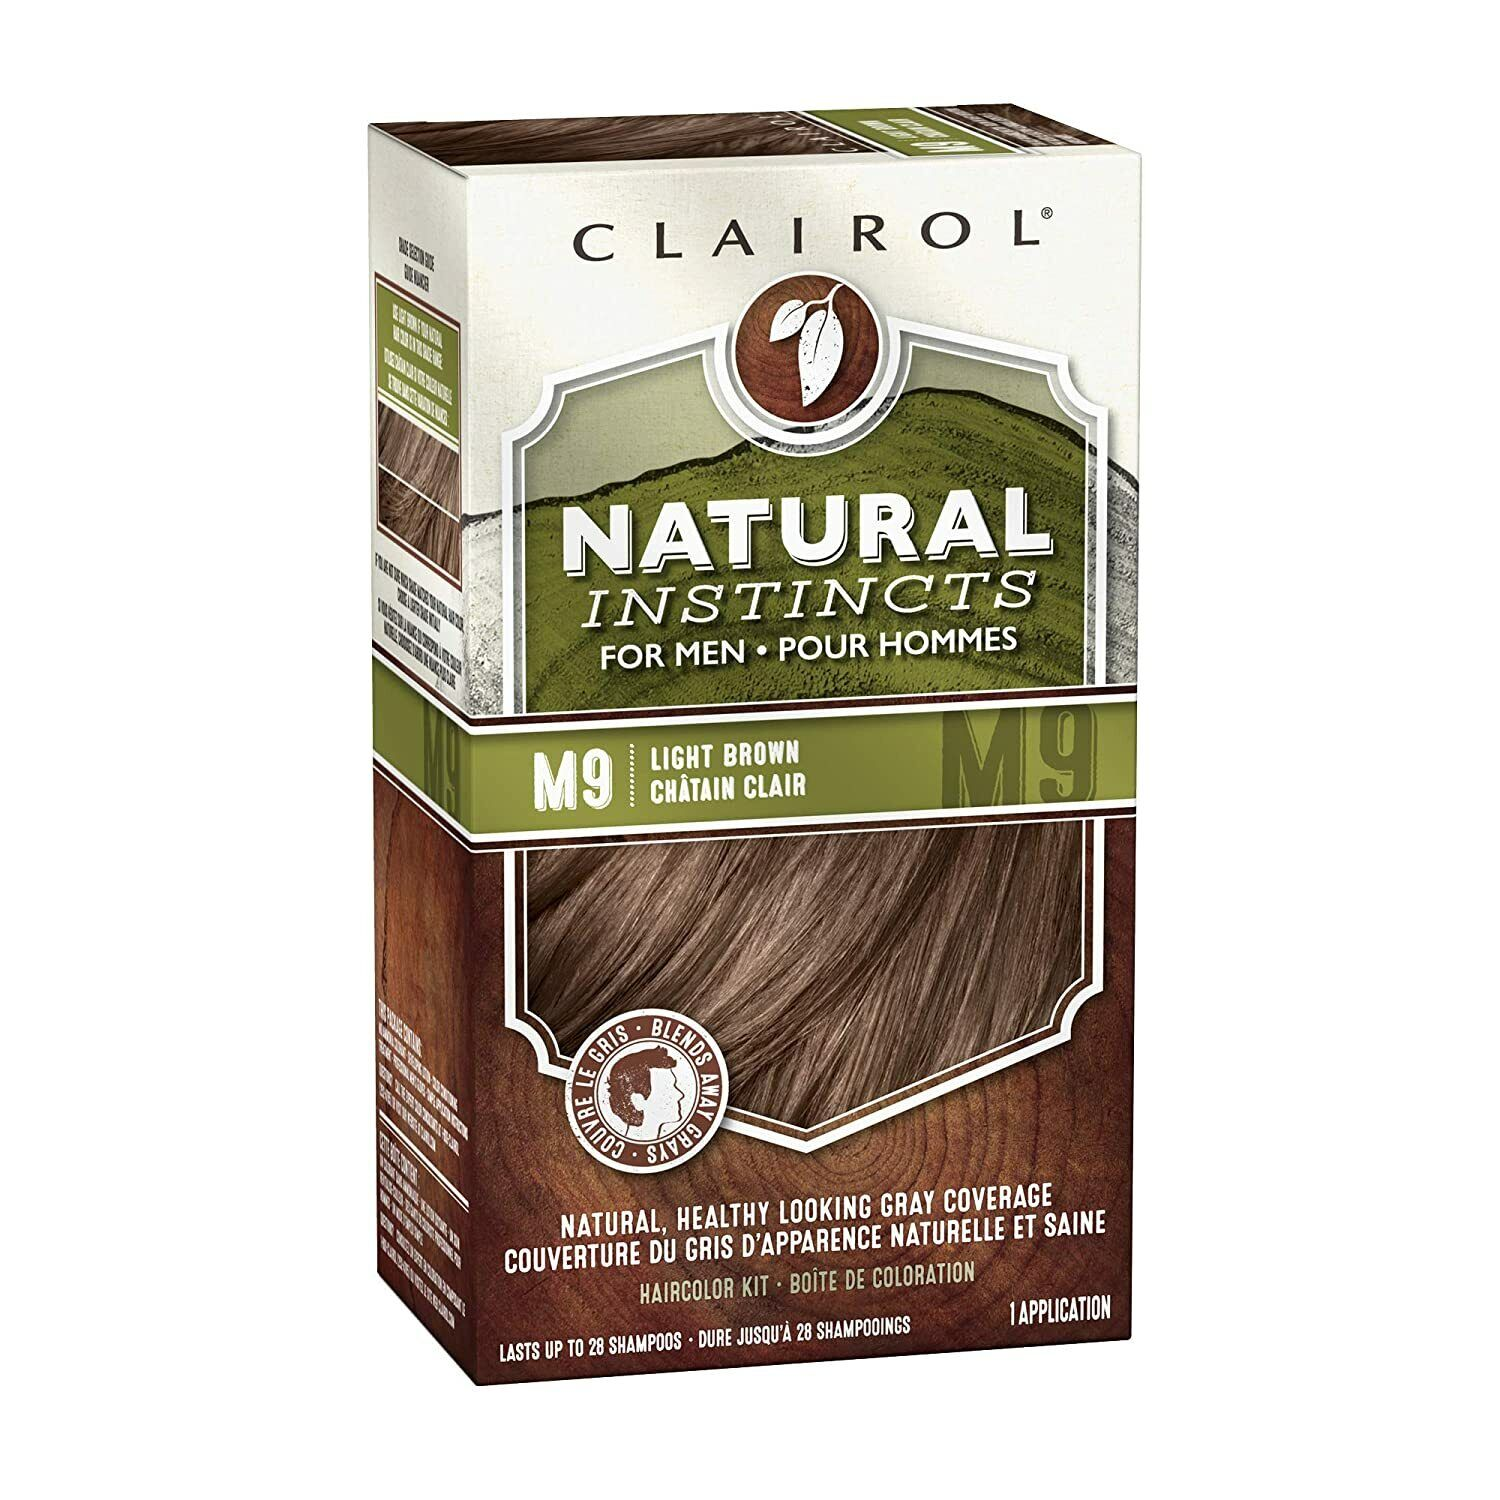 Clairol Natural Instincts Semi-Permanent Hair Color Kit For